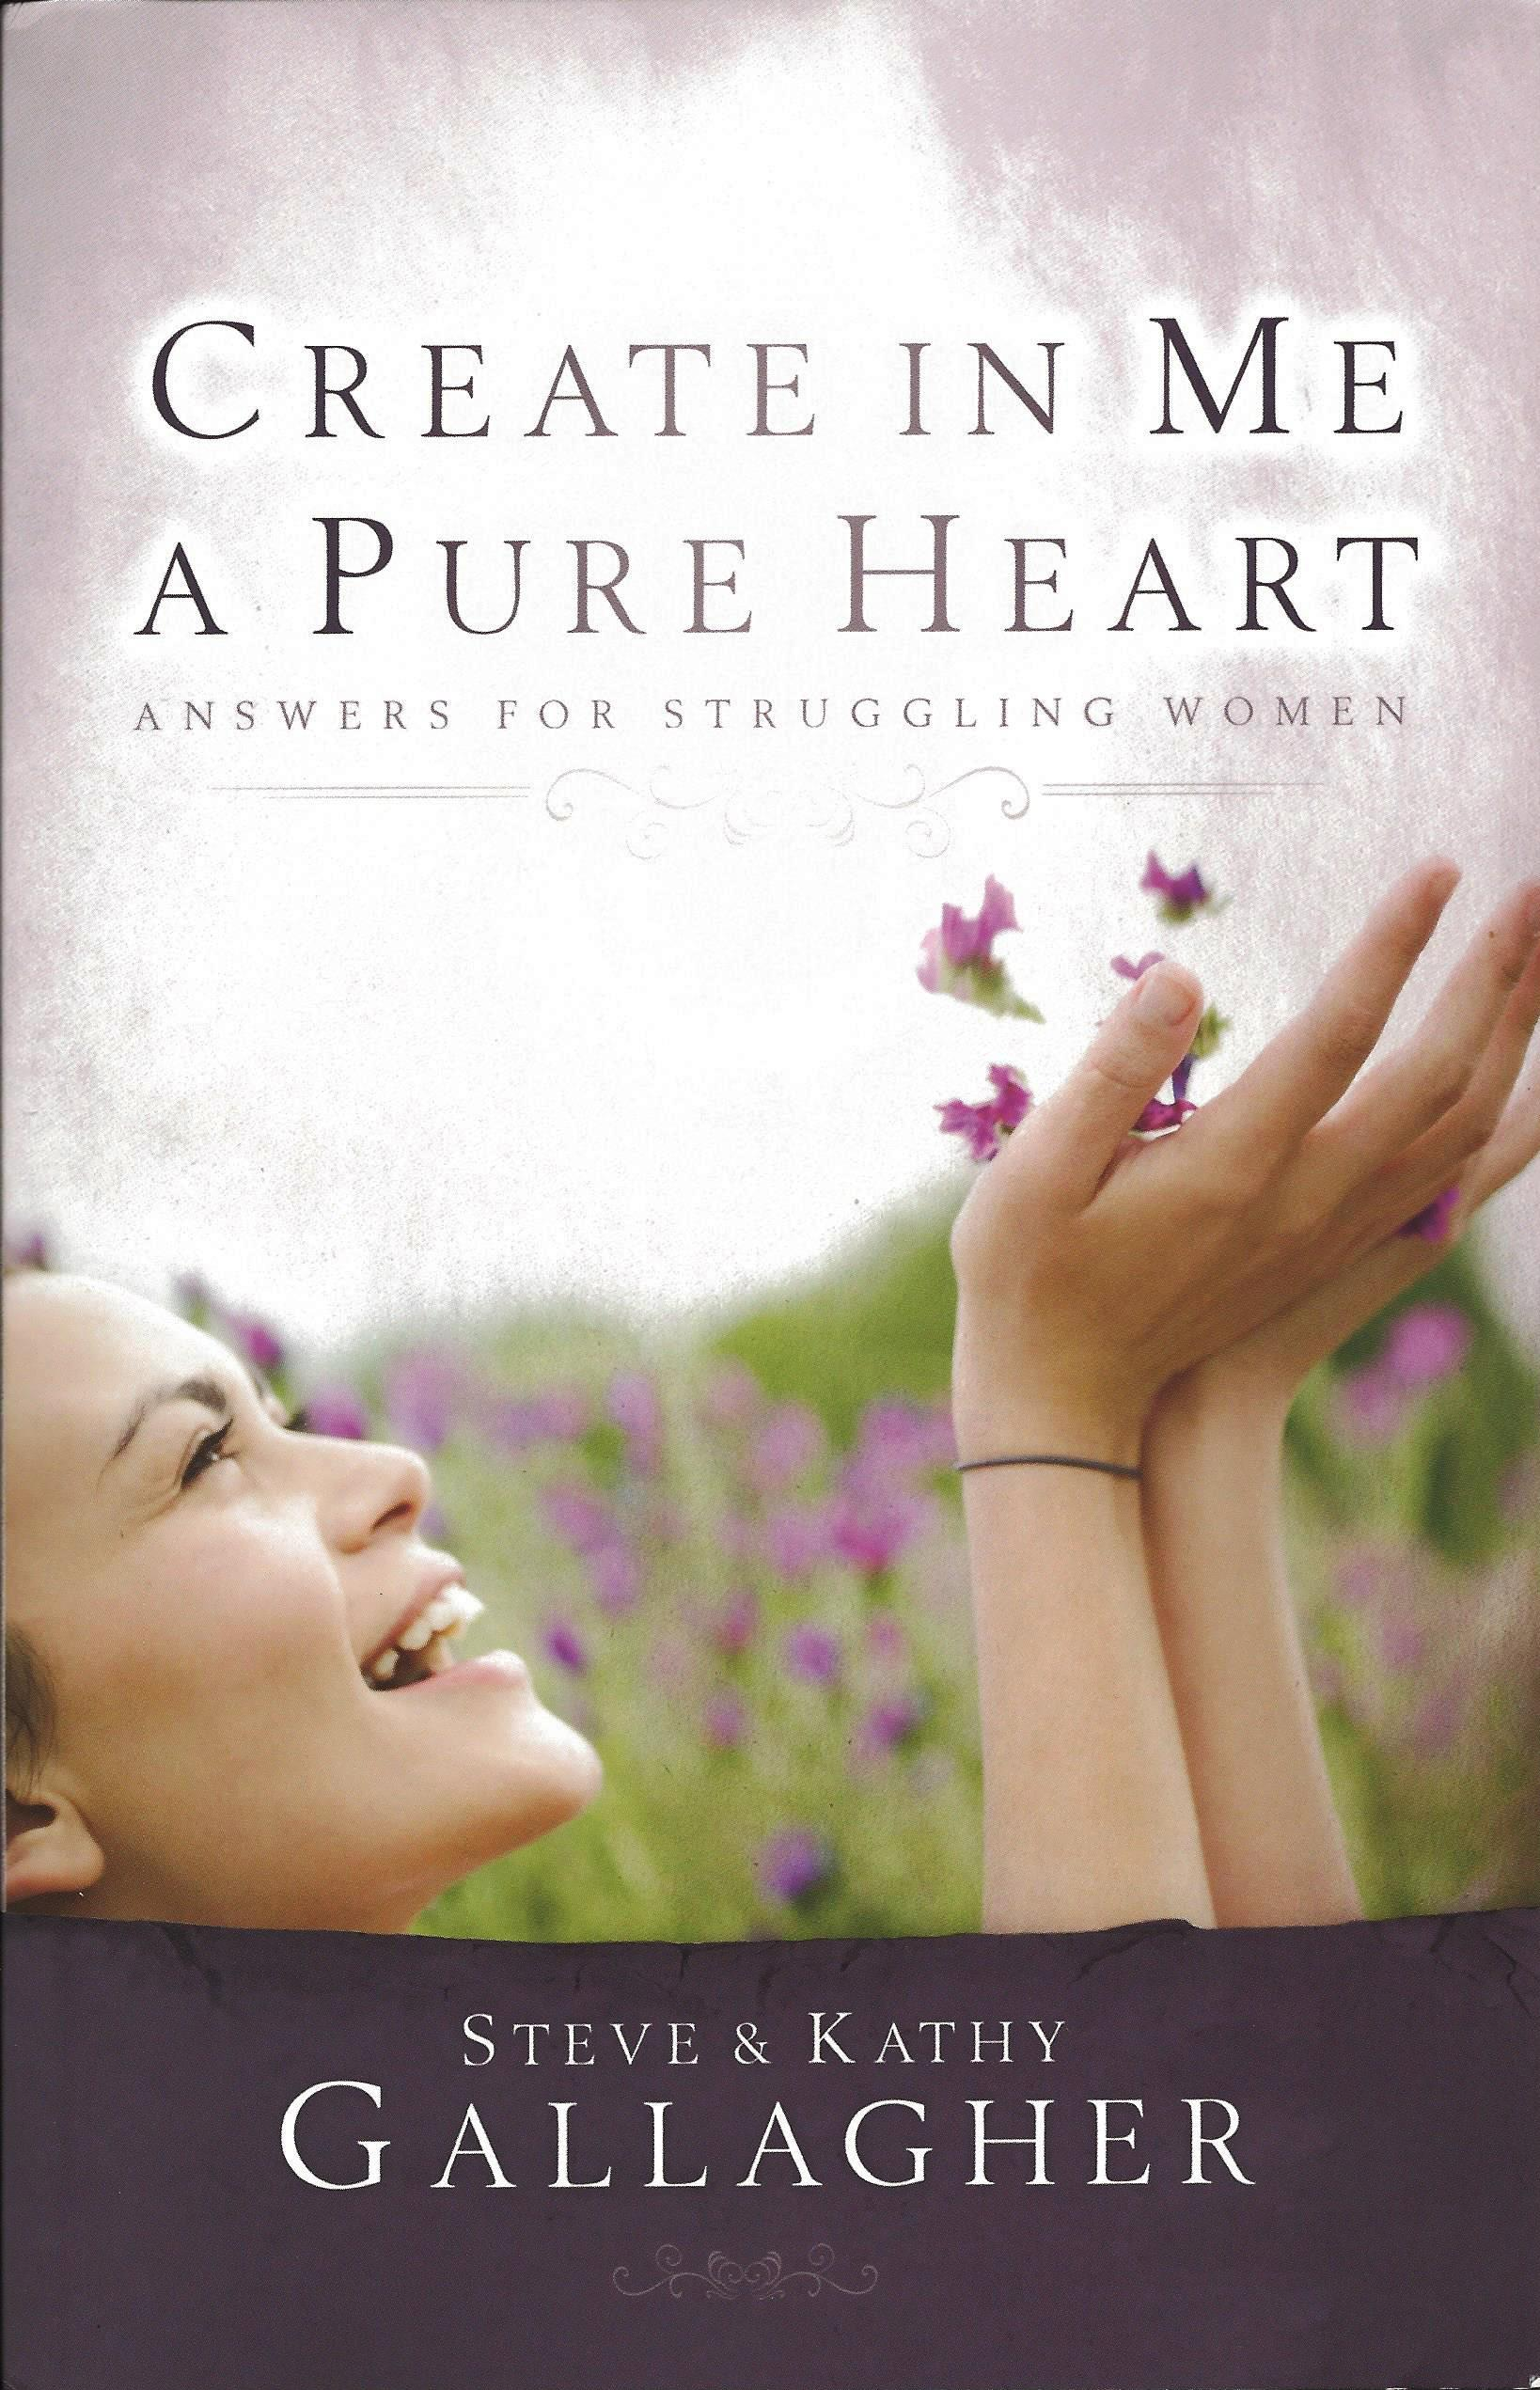 CREATE IN ME A PURE HEART Steve & Kathy Gallagher